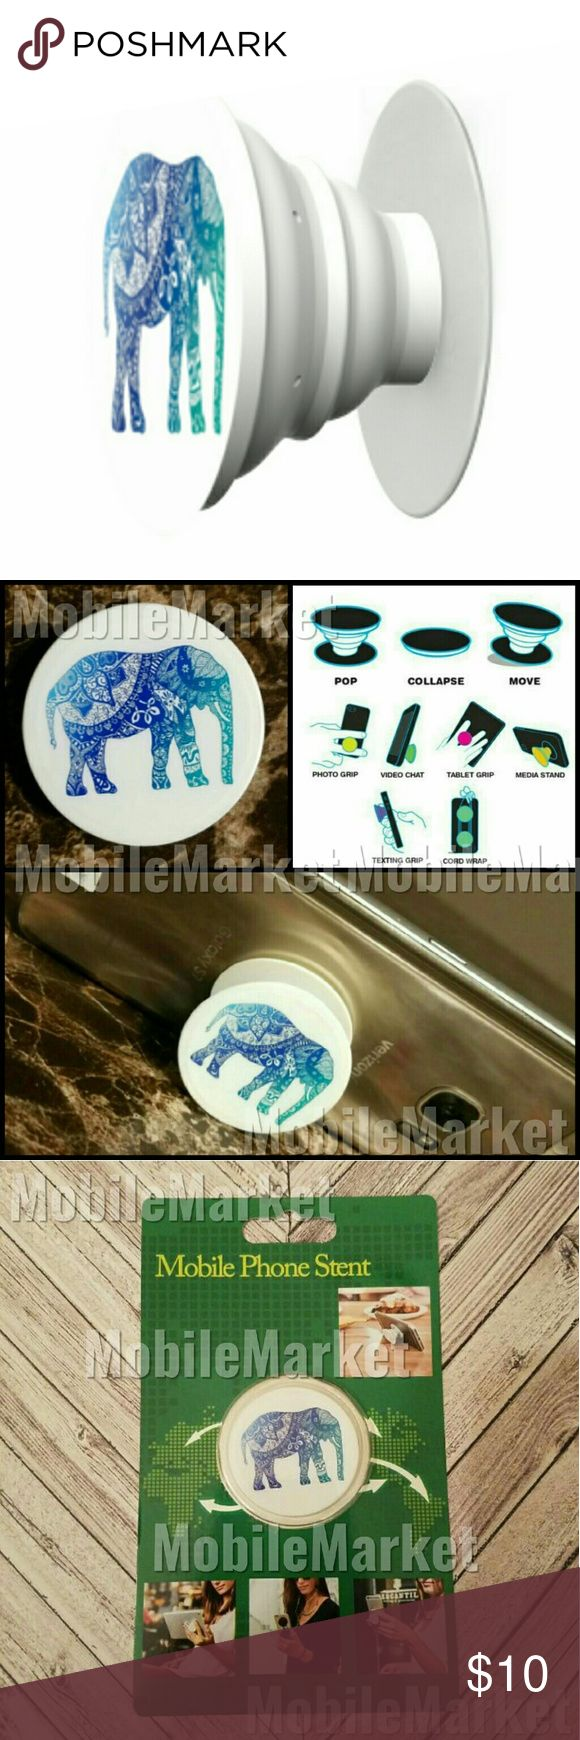 Mobile phone grip/stand ombre elephant blue teal *this is an individual listing for 1 phone stand, color is according to first picture*  Pop, tilt, wrap, grip, collapse, repeat! Mobile phone stent. Have a secure grip while calling, taking selfies, and texting. A socket for your phone! Use as a phone stand, portrait and landscape mode. and even to wrap your headphones around and prevent tangles and knots!! Retail packaging makes it the perfect gift! Mobile Market Accessories